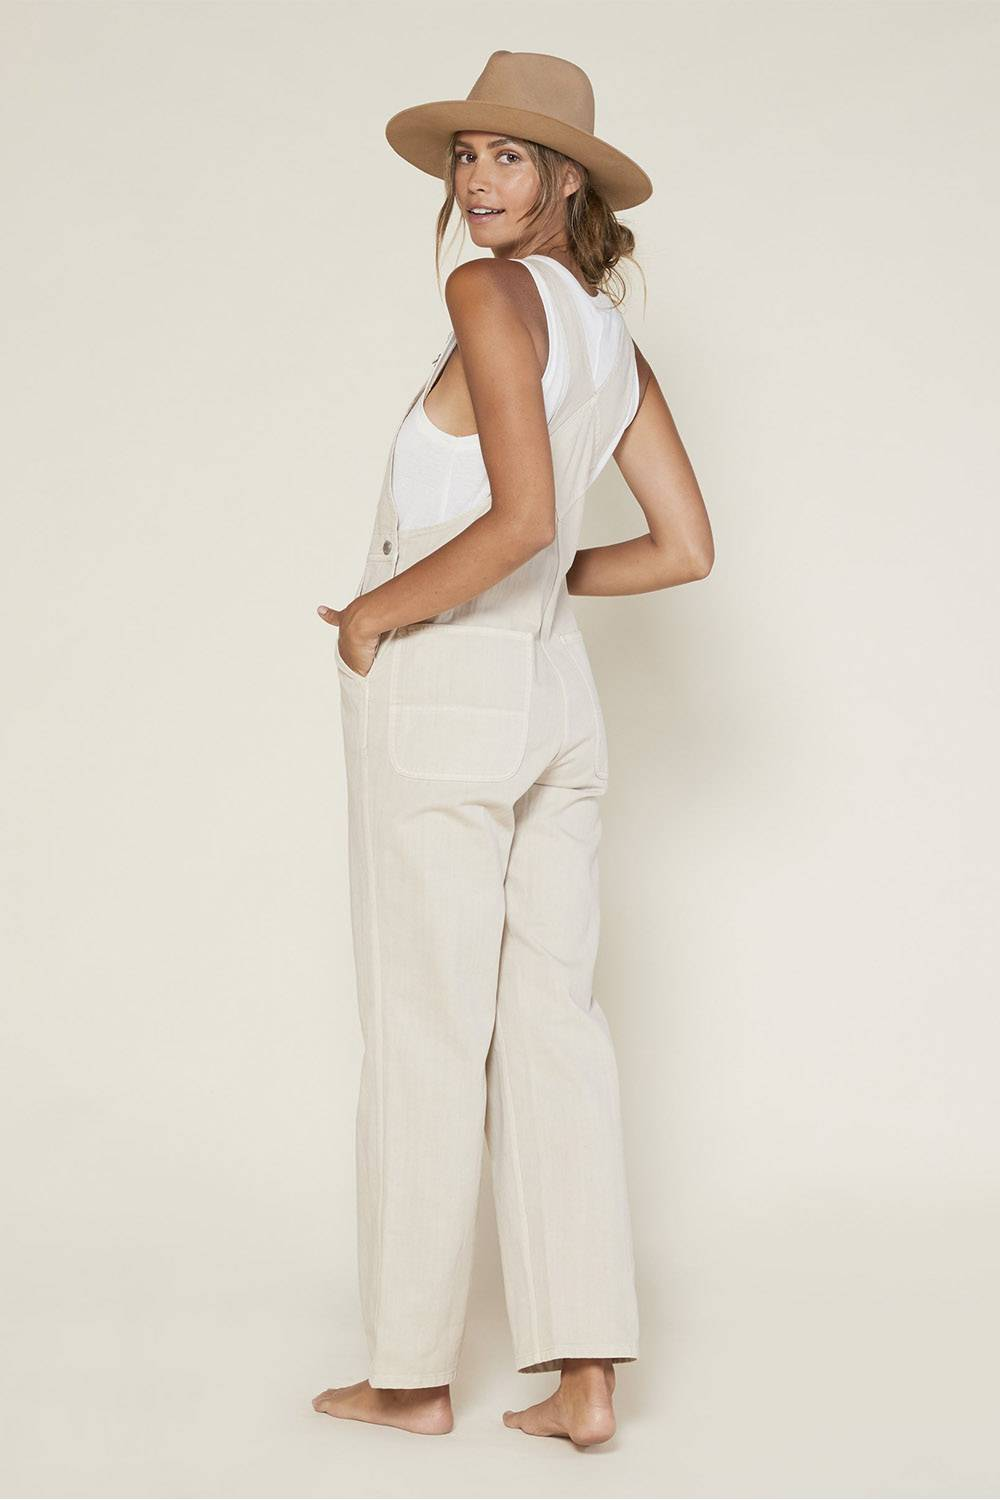 outerknown boho chic clothes made in usa